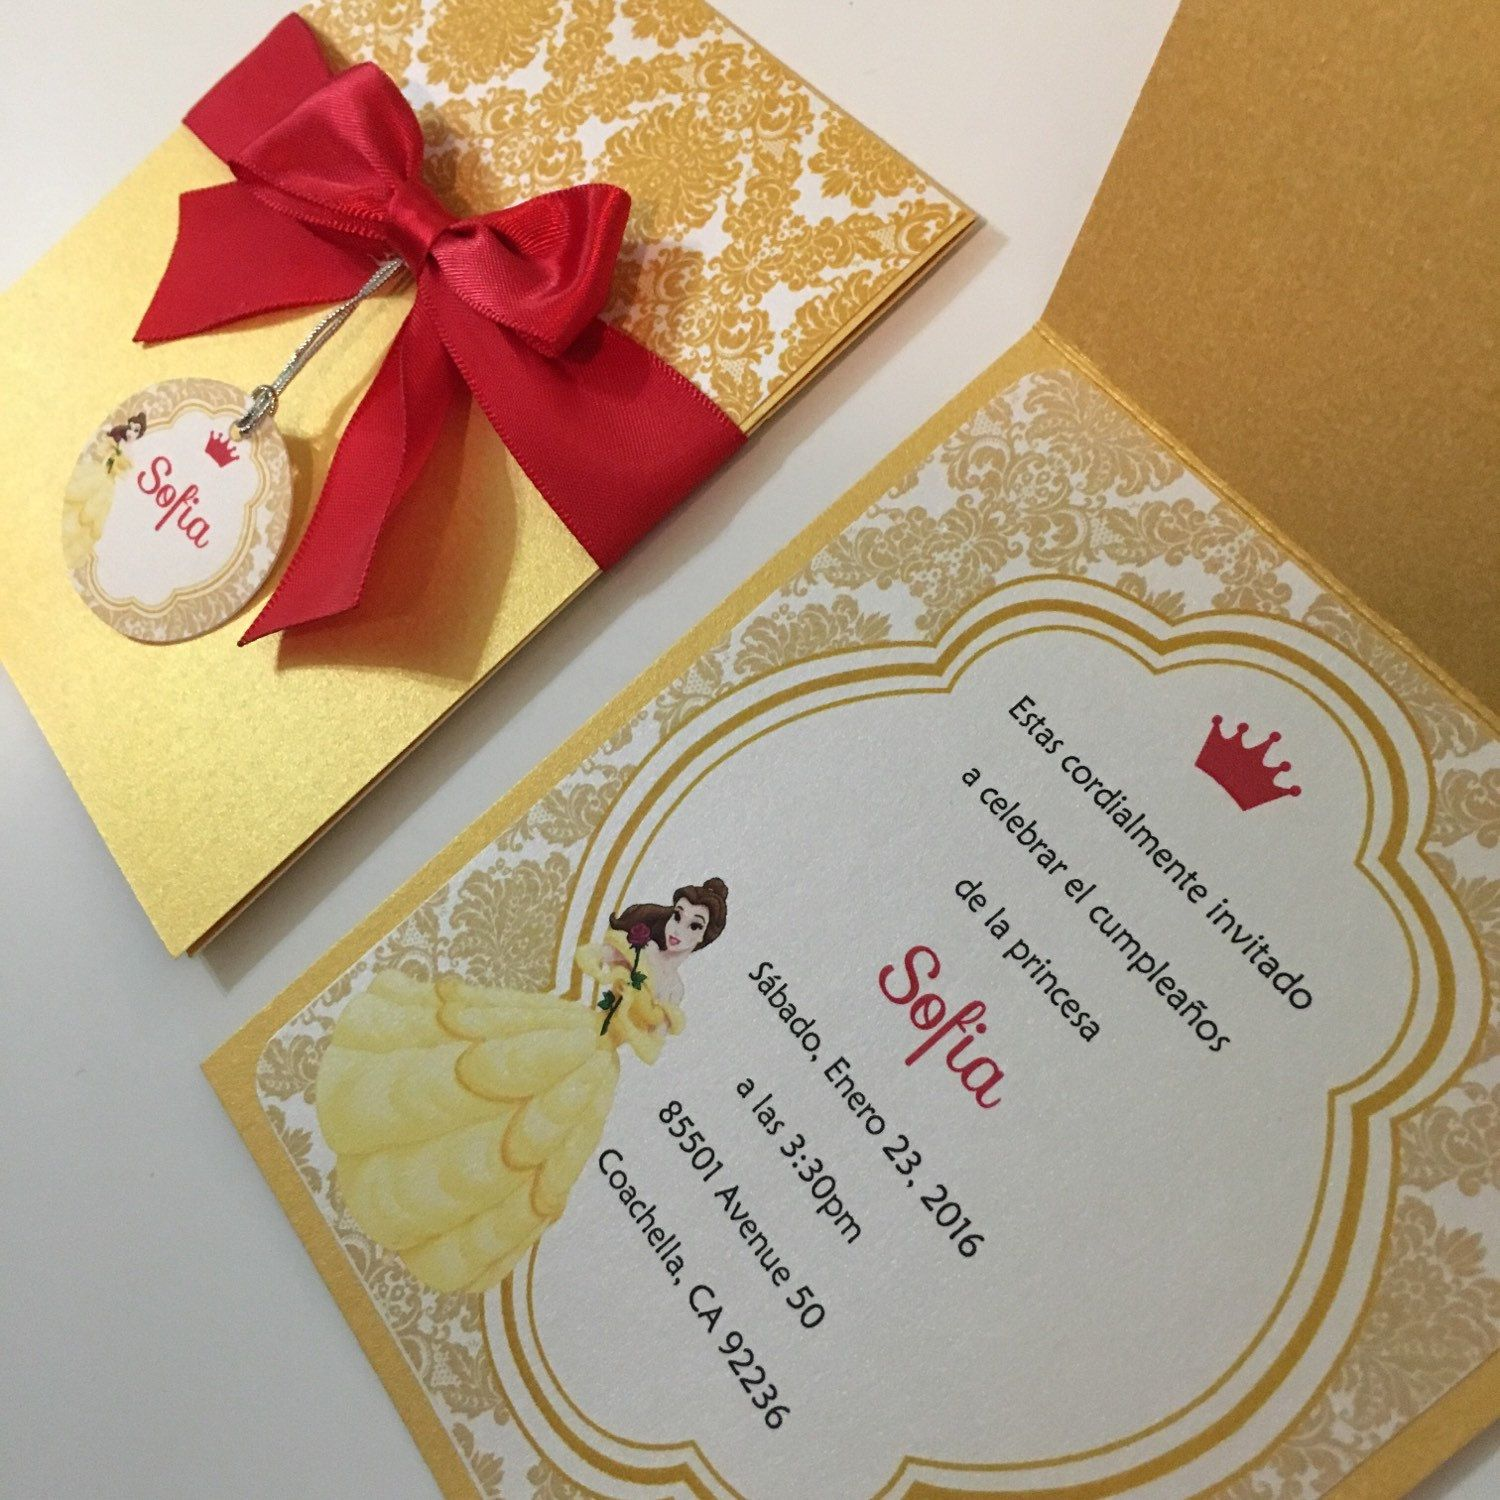 Beauty and the beast Party invitations I did it – Beauty and the Beast Party Invitations